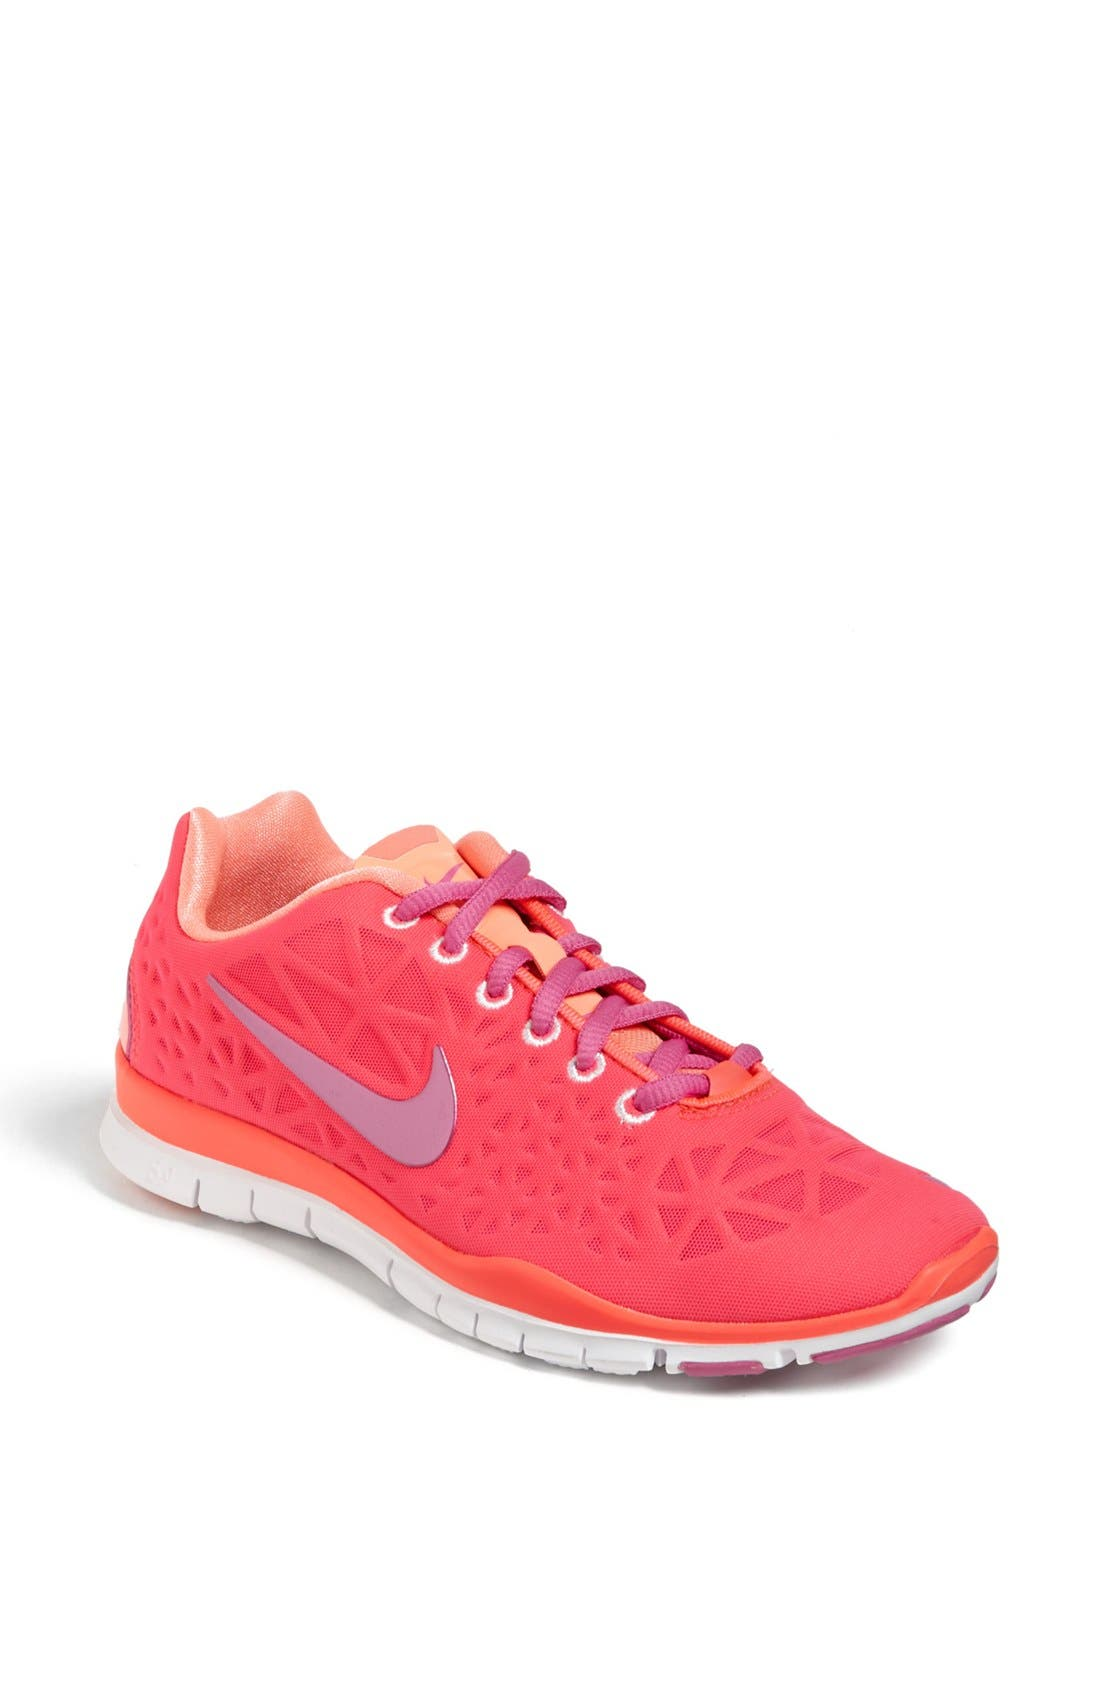 Alternate Image 1 Selected - Nike 'Free TR Fit 3' Training Shoe (Women)